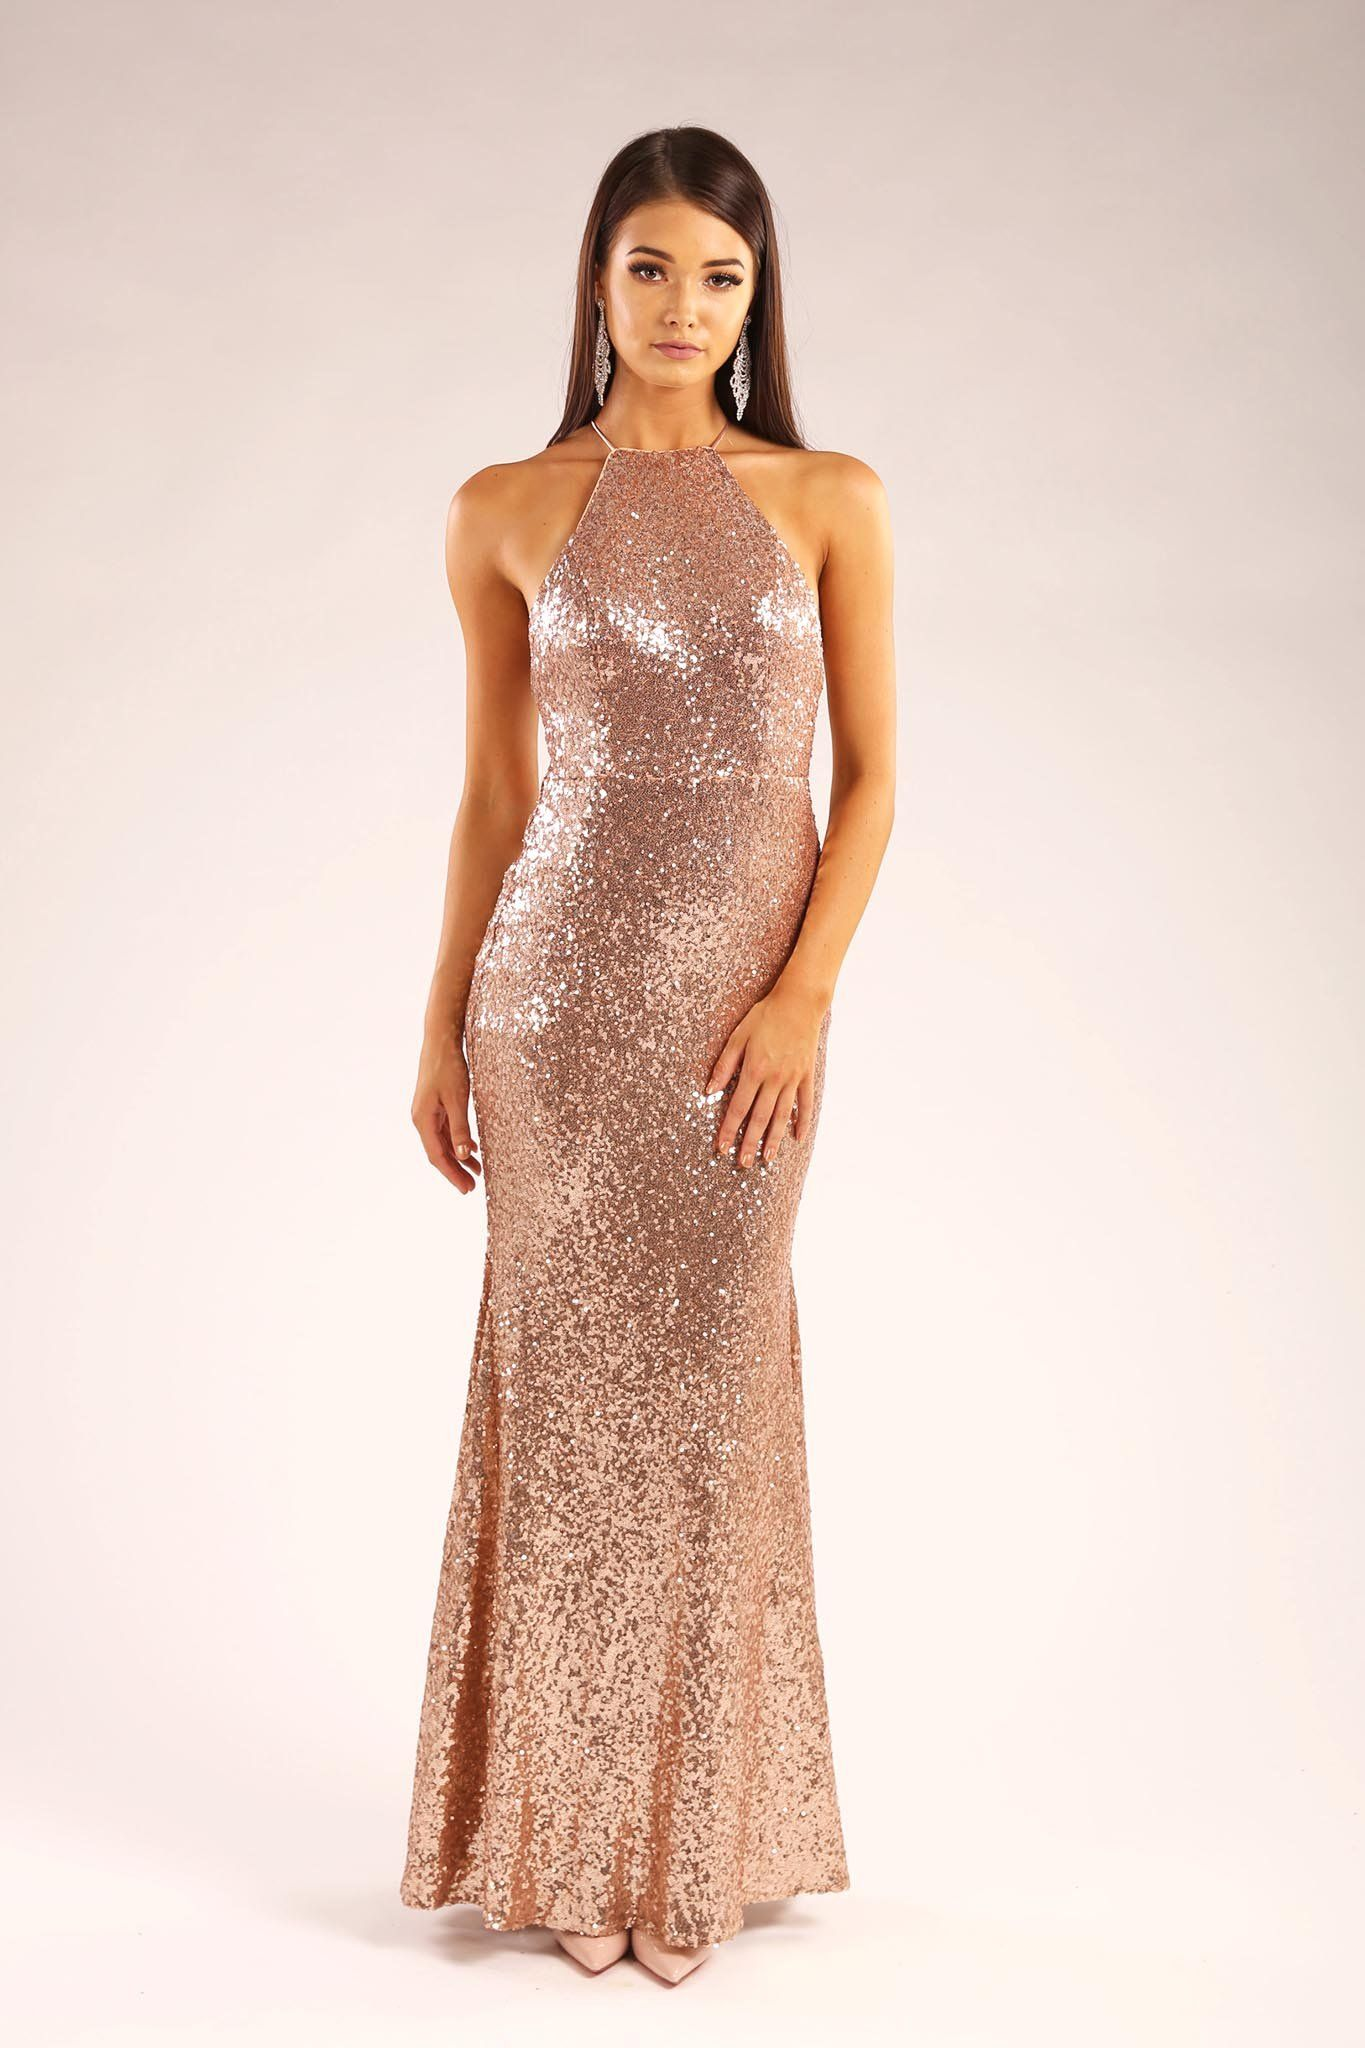 d3cfaaac1945a ... Rose Gold metallic sequin sleeveless fitted maxi dress with lace up  open back design ...